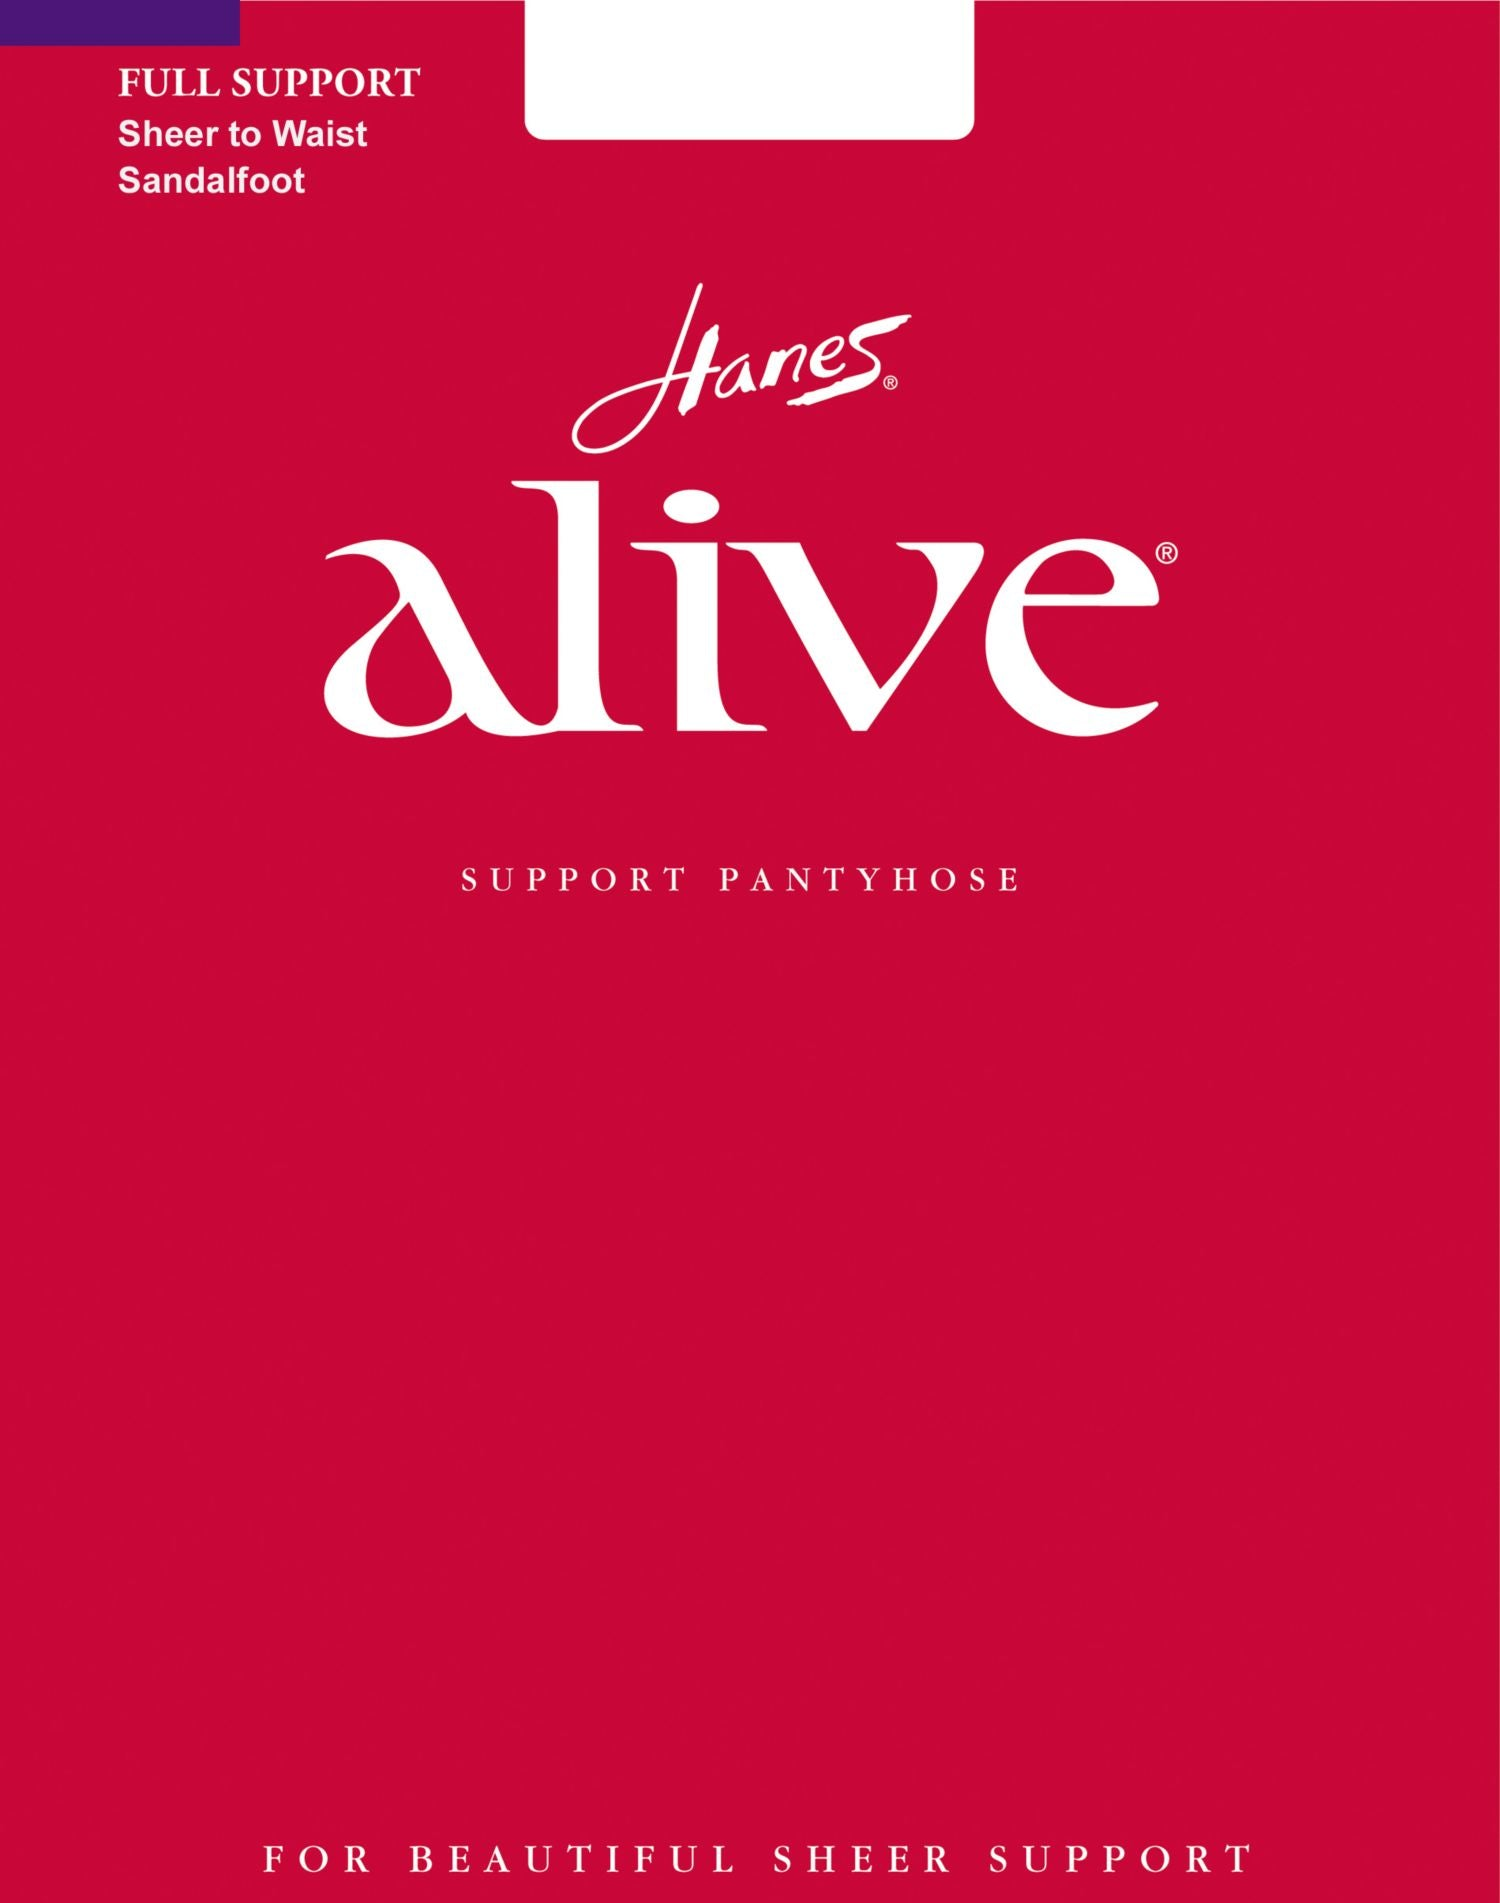 29f26b8b9e5 00811 - Hanes Alive Full Support Sheer to Waist Pantyhose – NY Lingerie